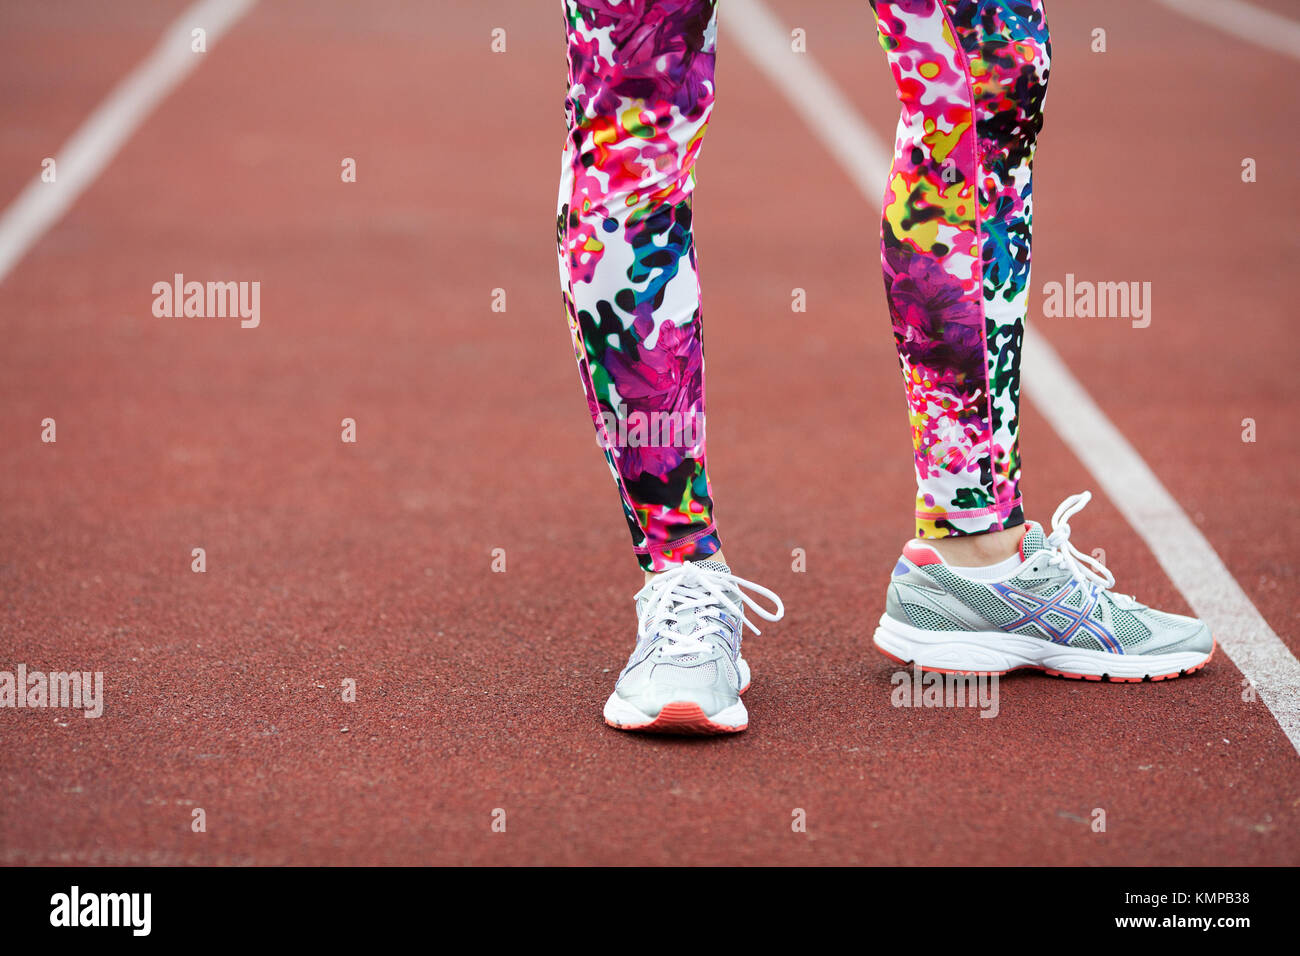 df9d7217d Legs sports girl in bright tights and grey sneakers on the Jogging path.  Woman warming